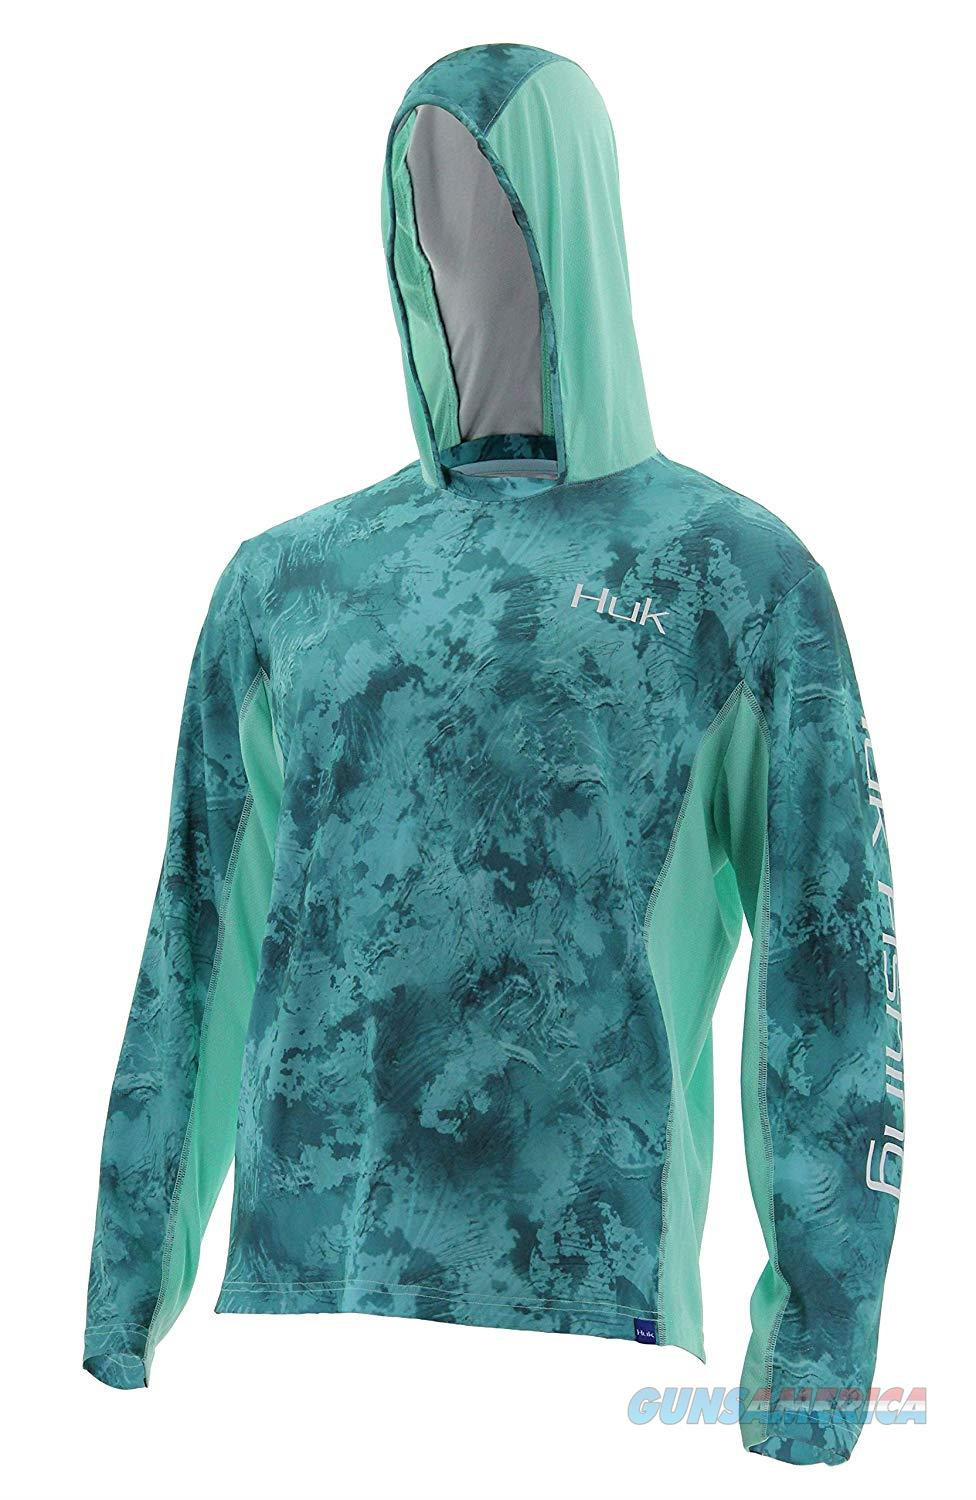 Huk Icon Camo Hoodie Outgoing Tide XL  Non-Guns > Hunting Clothing and Equipment > Clothing > Shirts